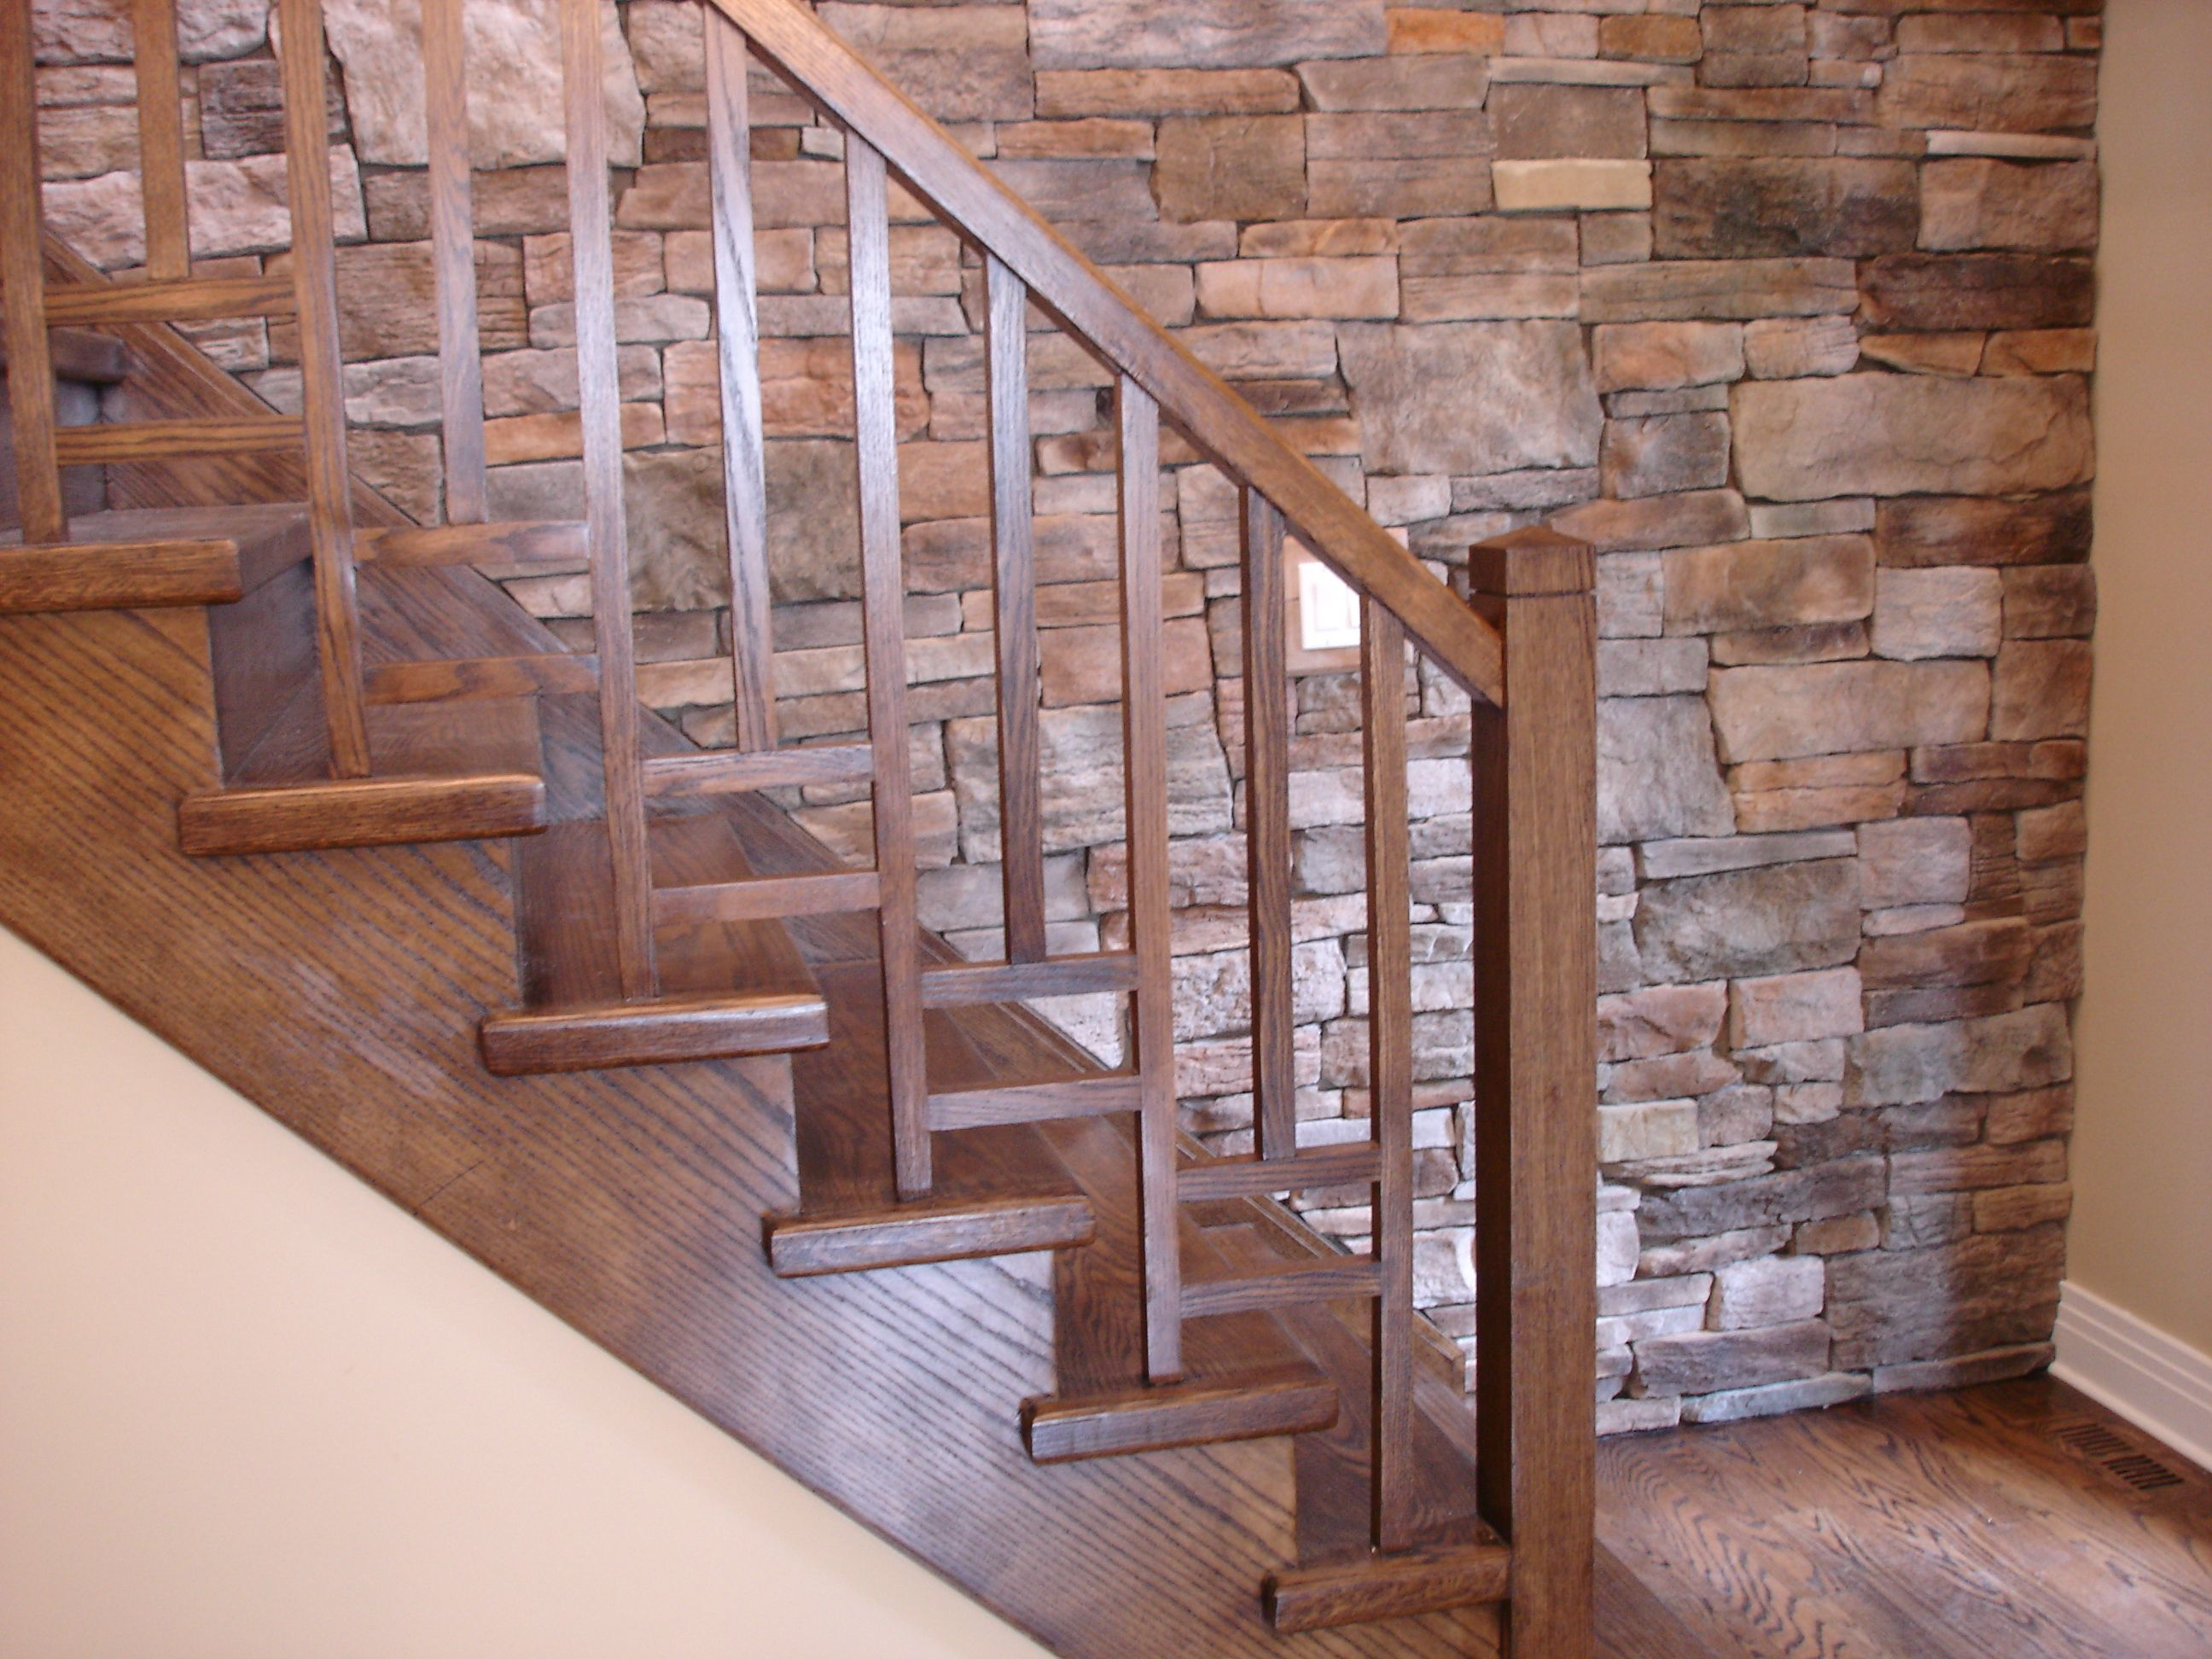 Stair Railing Types Stair Banisters And Railings Ideas | Wooden Hand Railing Designs | Light Wood | Residential Industrial Stair | Wood Panel | Decorative Glass | Scandinavian